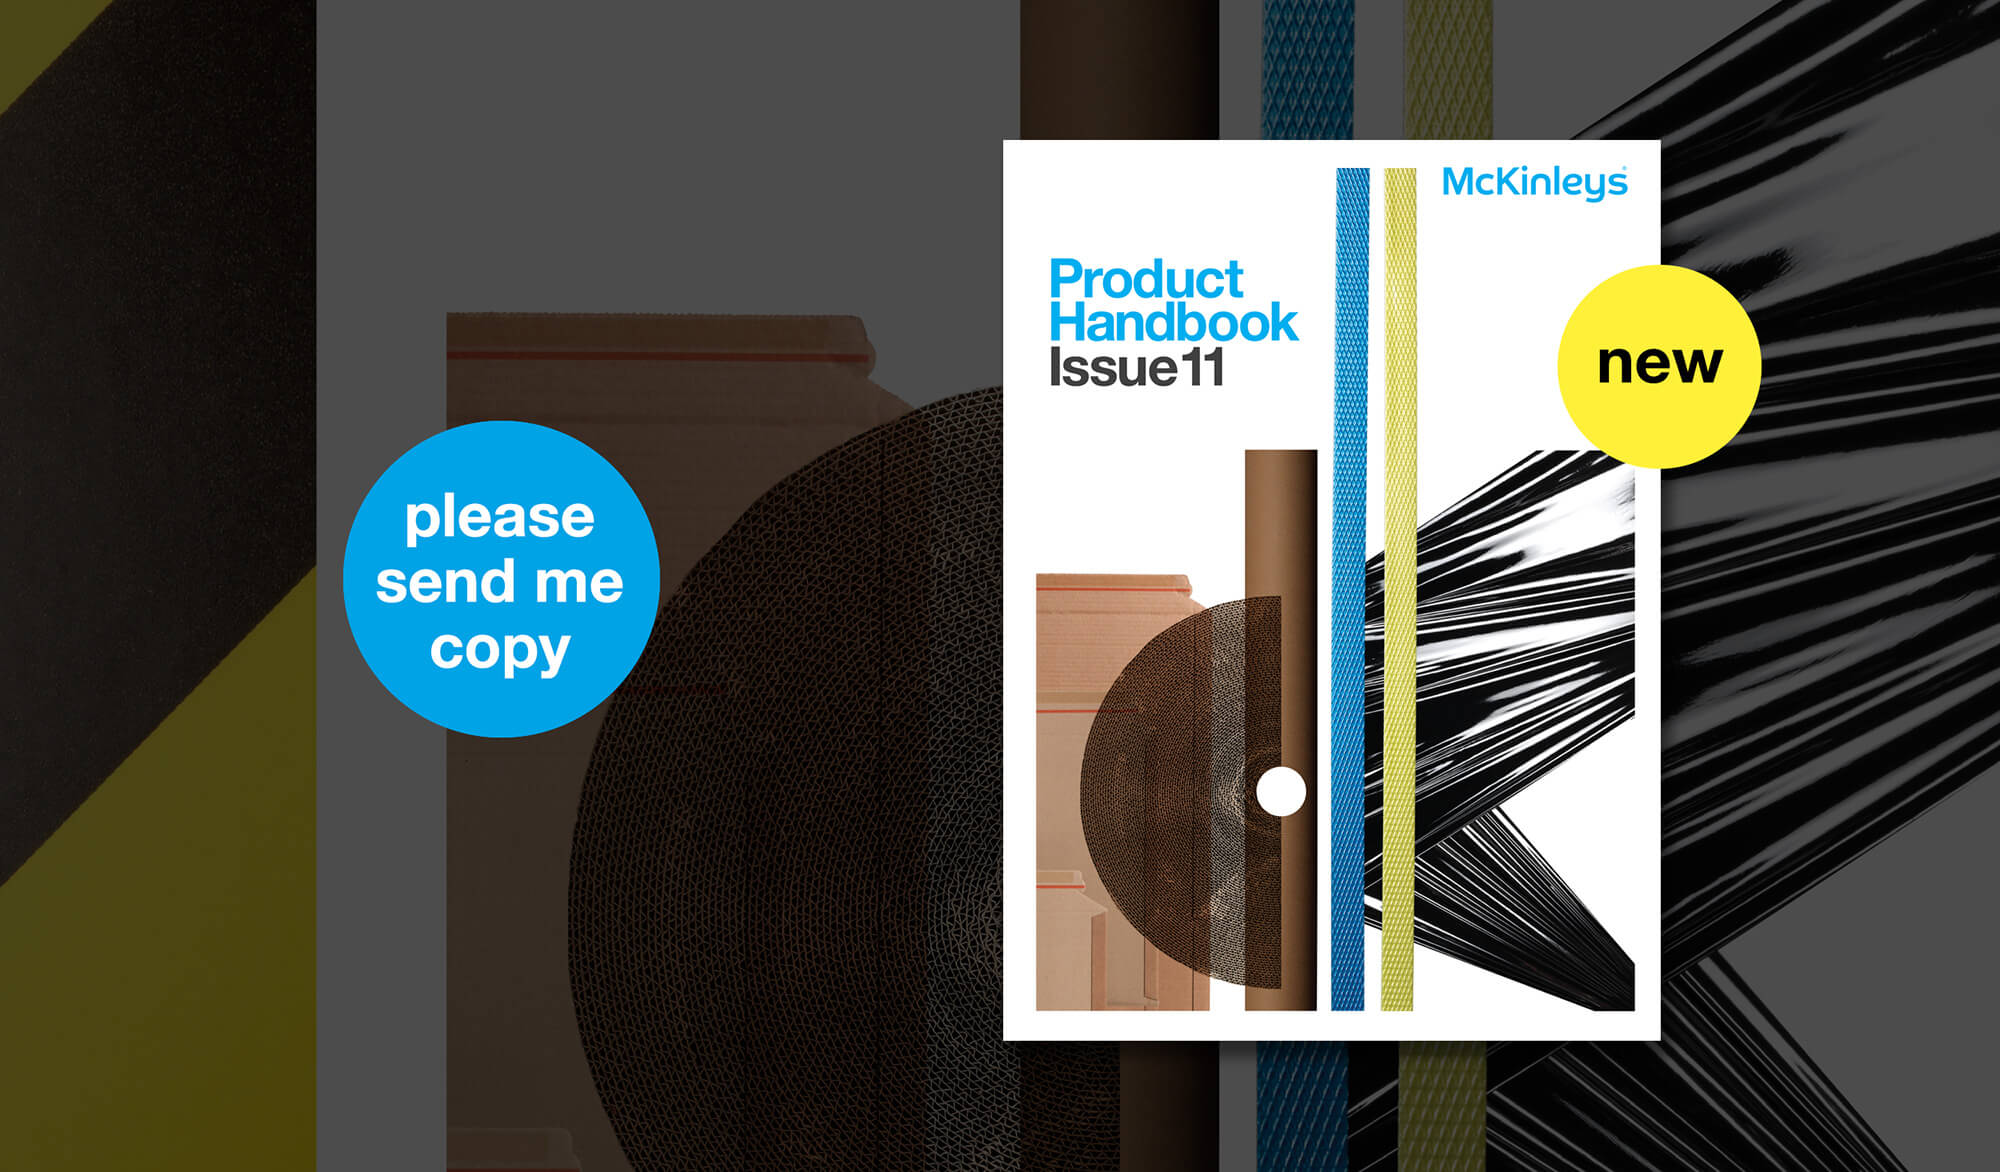 Product Handbook (issue 11) - please send me a copy